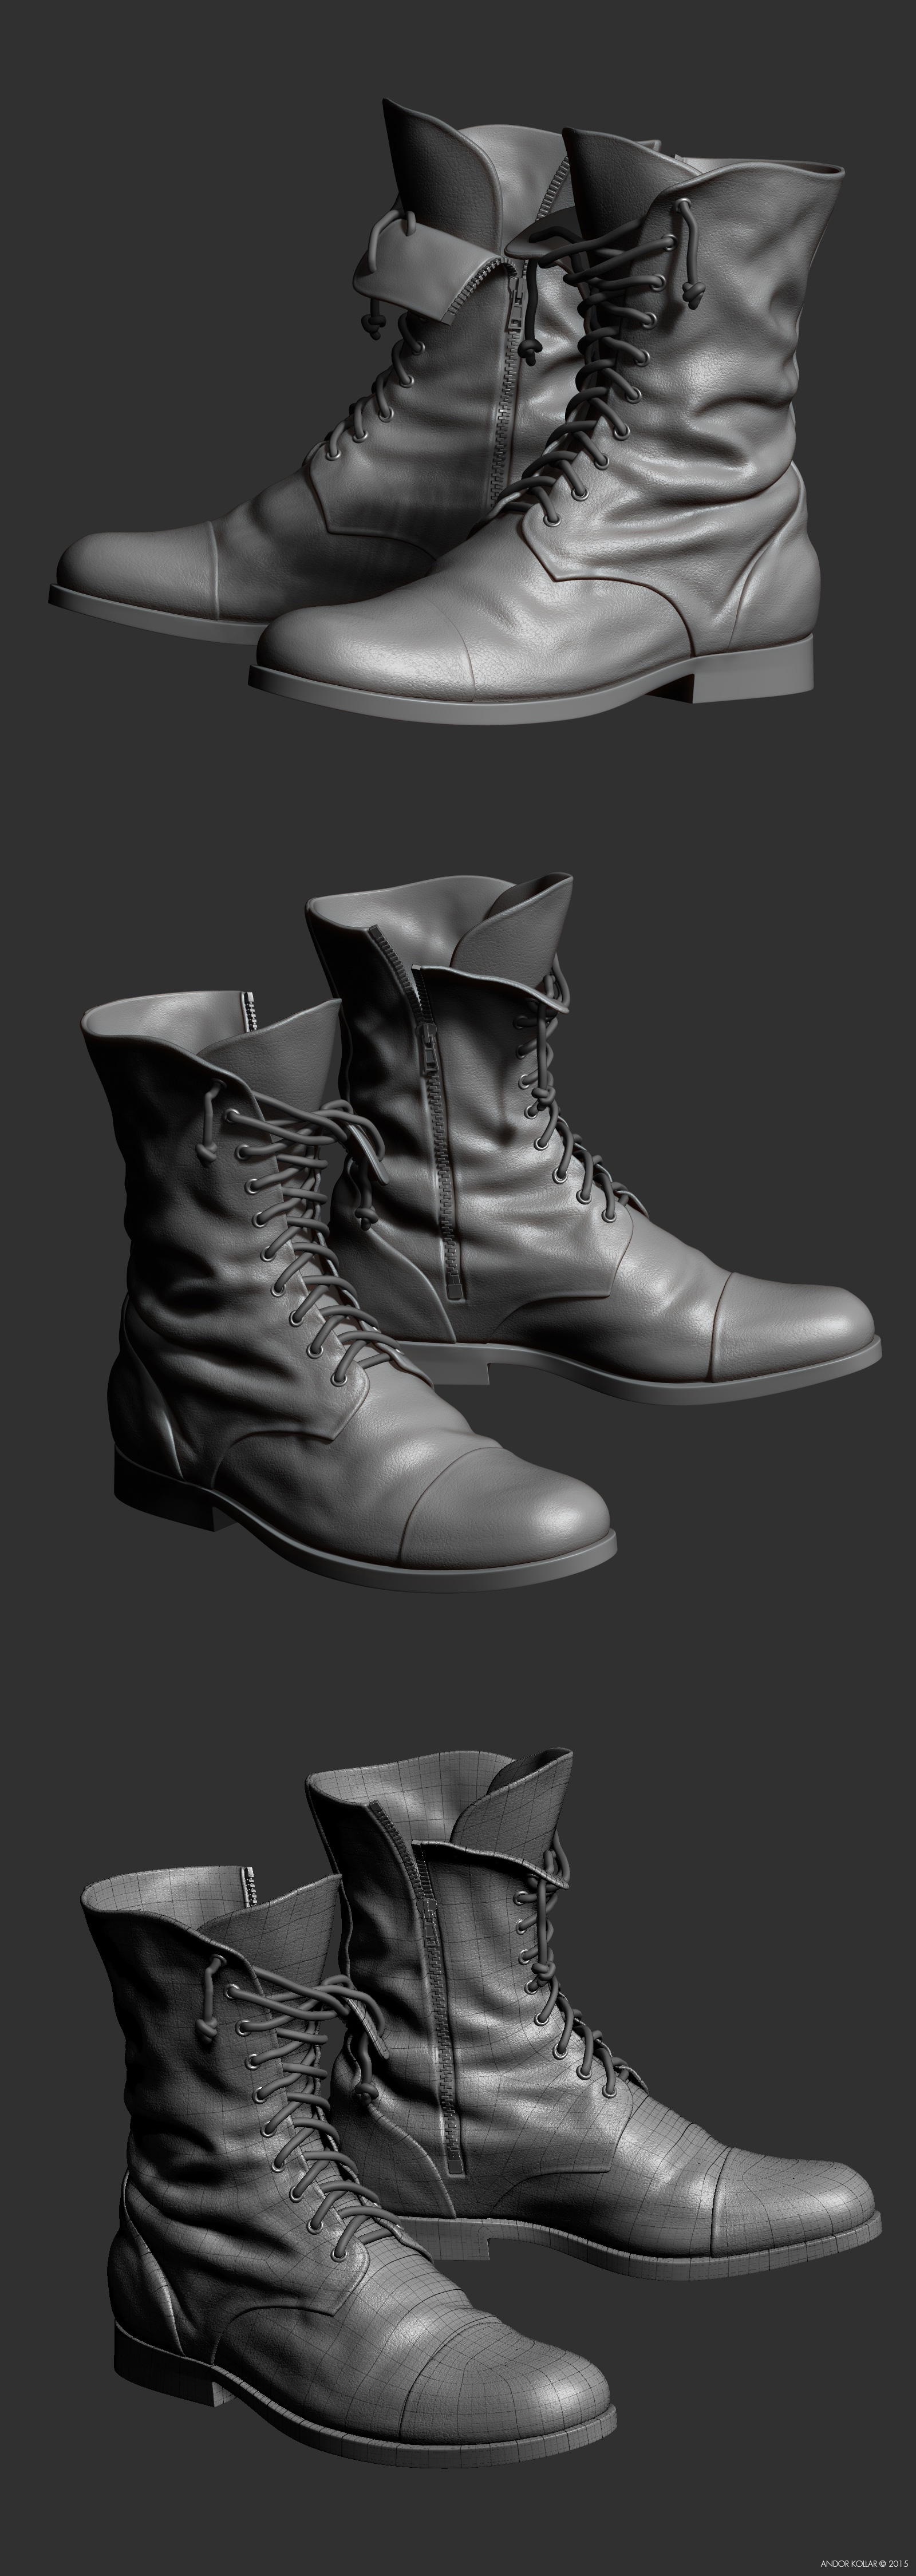 ZBrush military boots